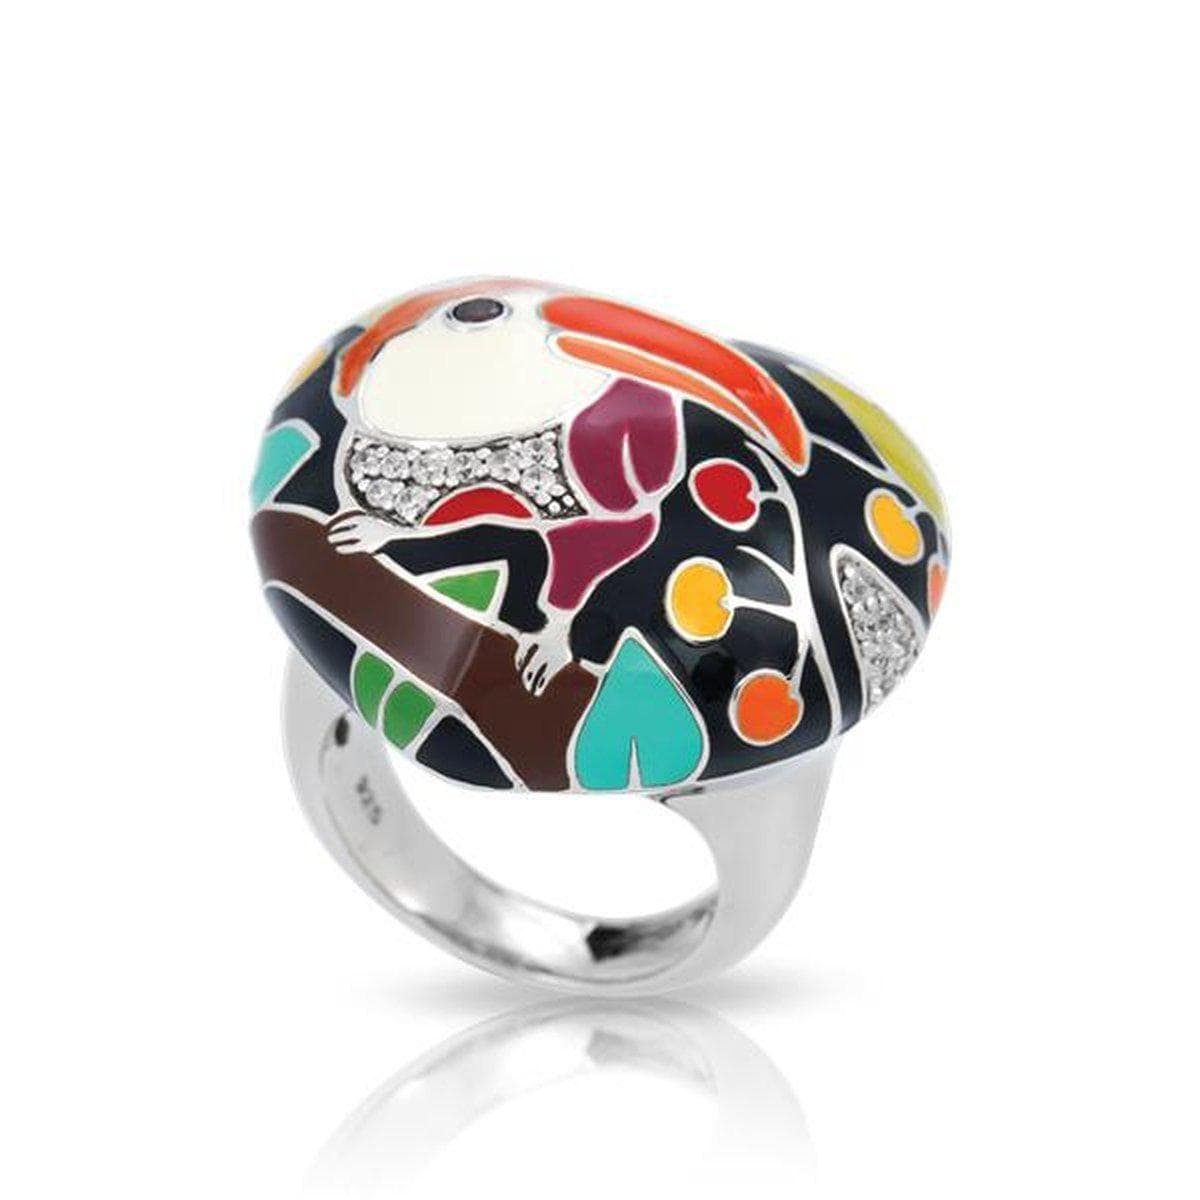 Love Toucan Black Ring-Belle Etoile-Renee Taylor Gallery